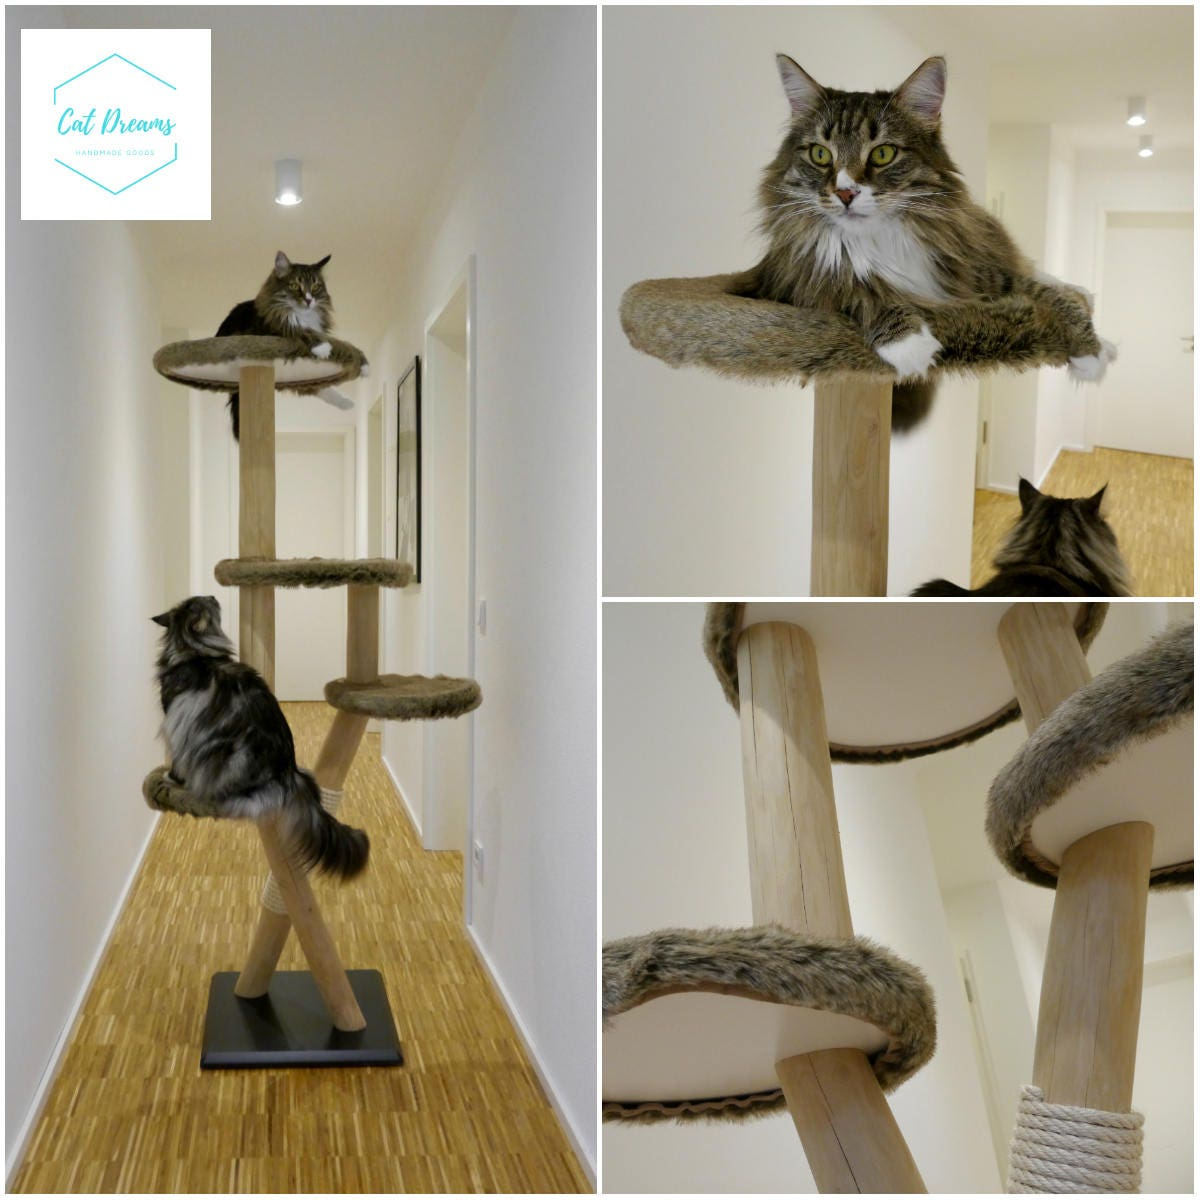 Arbre a chat naturel fashion designs - Arbre a chat bois naturel ...